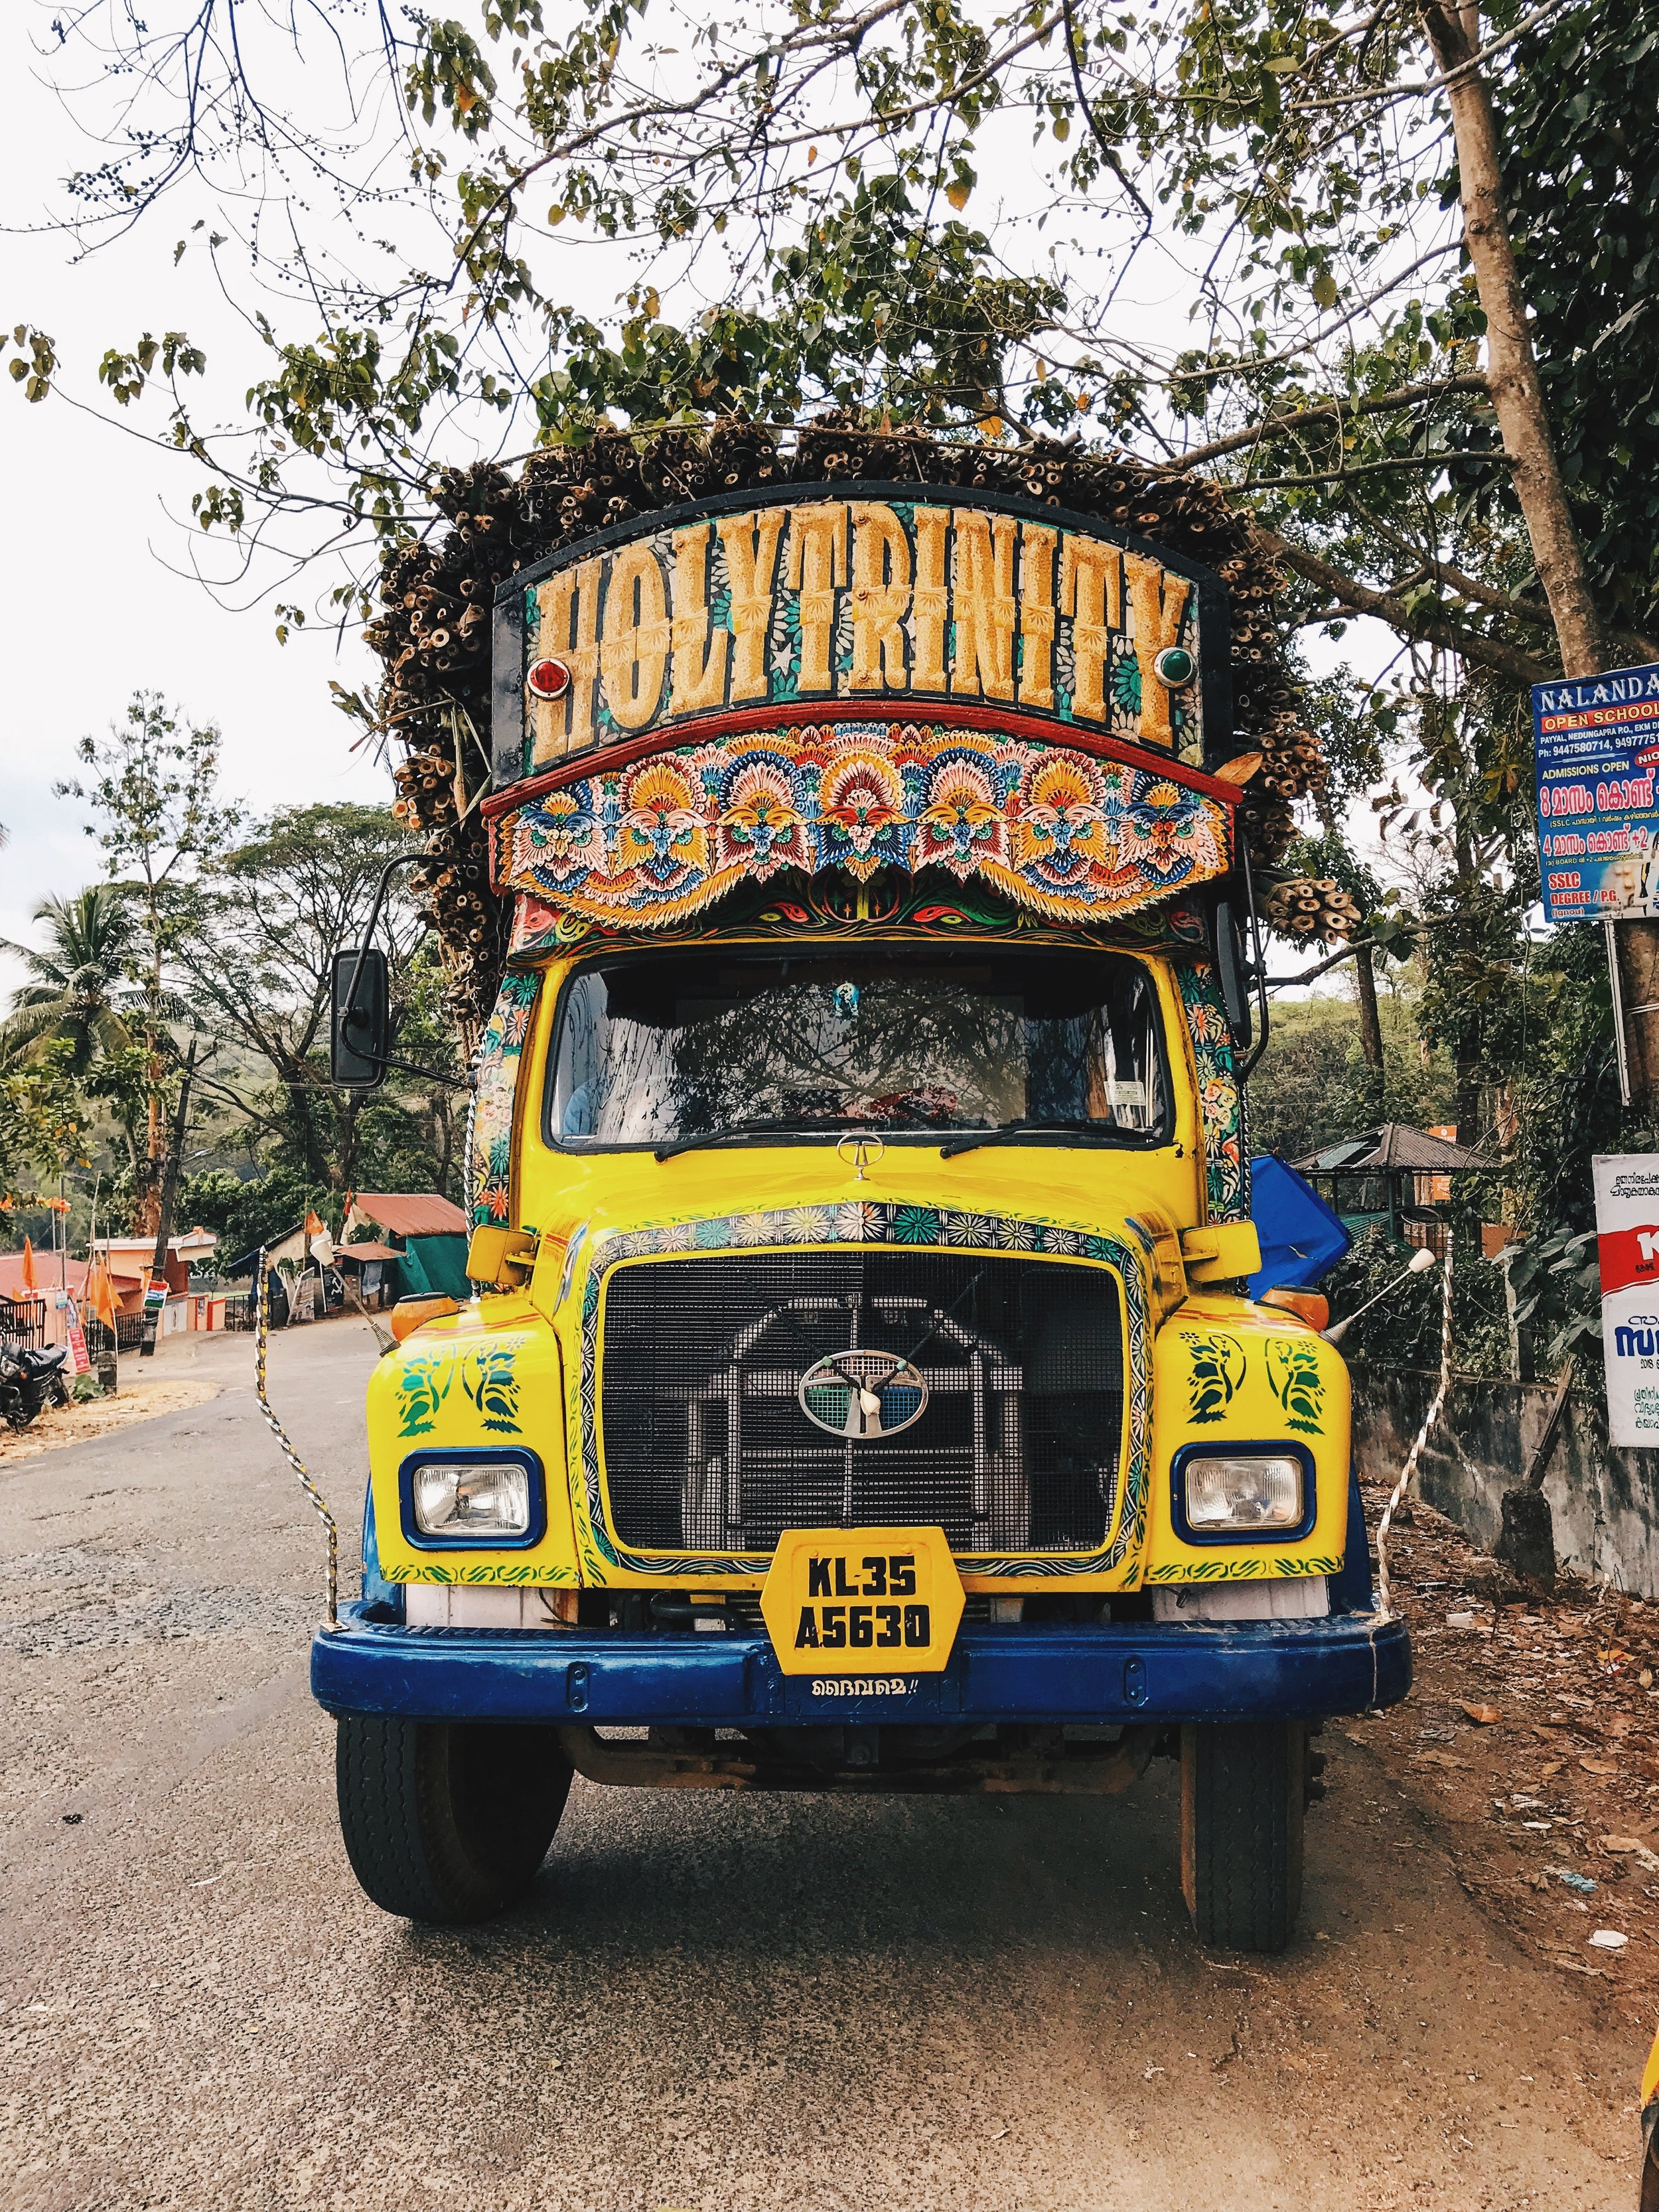 Spotted this beauty of a truck, parked right outside the sanctuary. It was overloaded with bamboo.